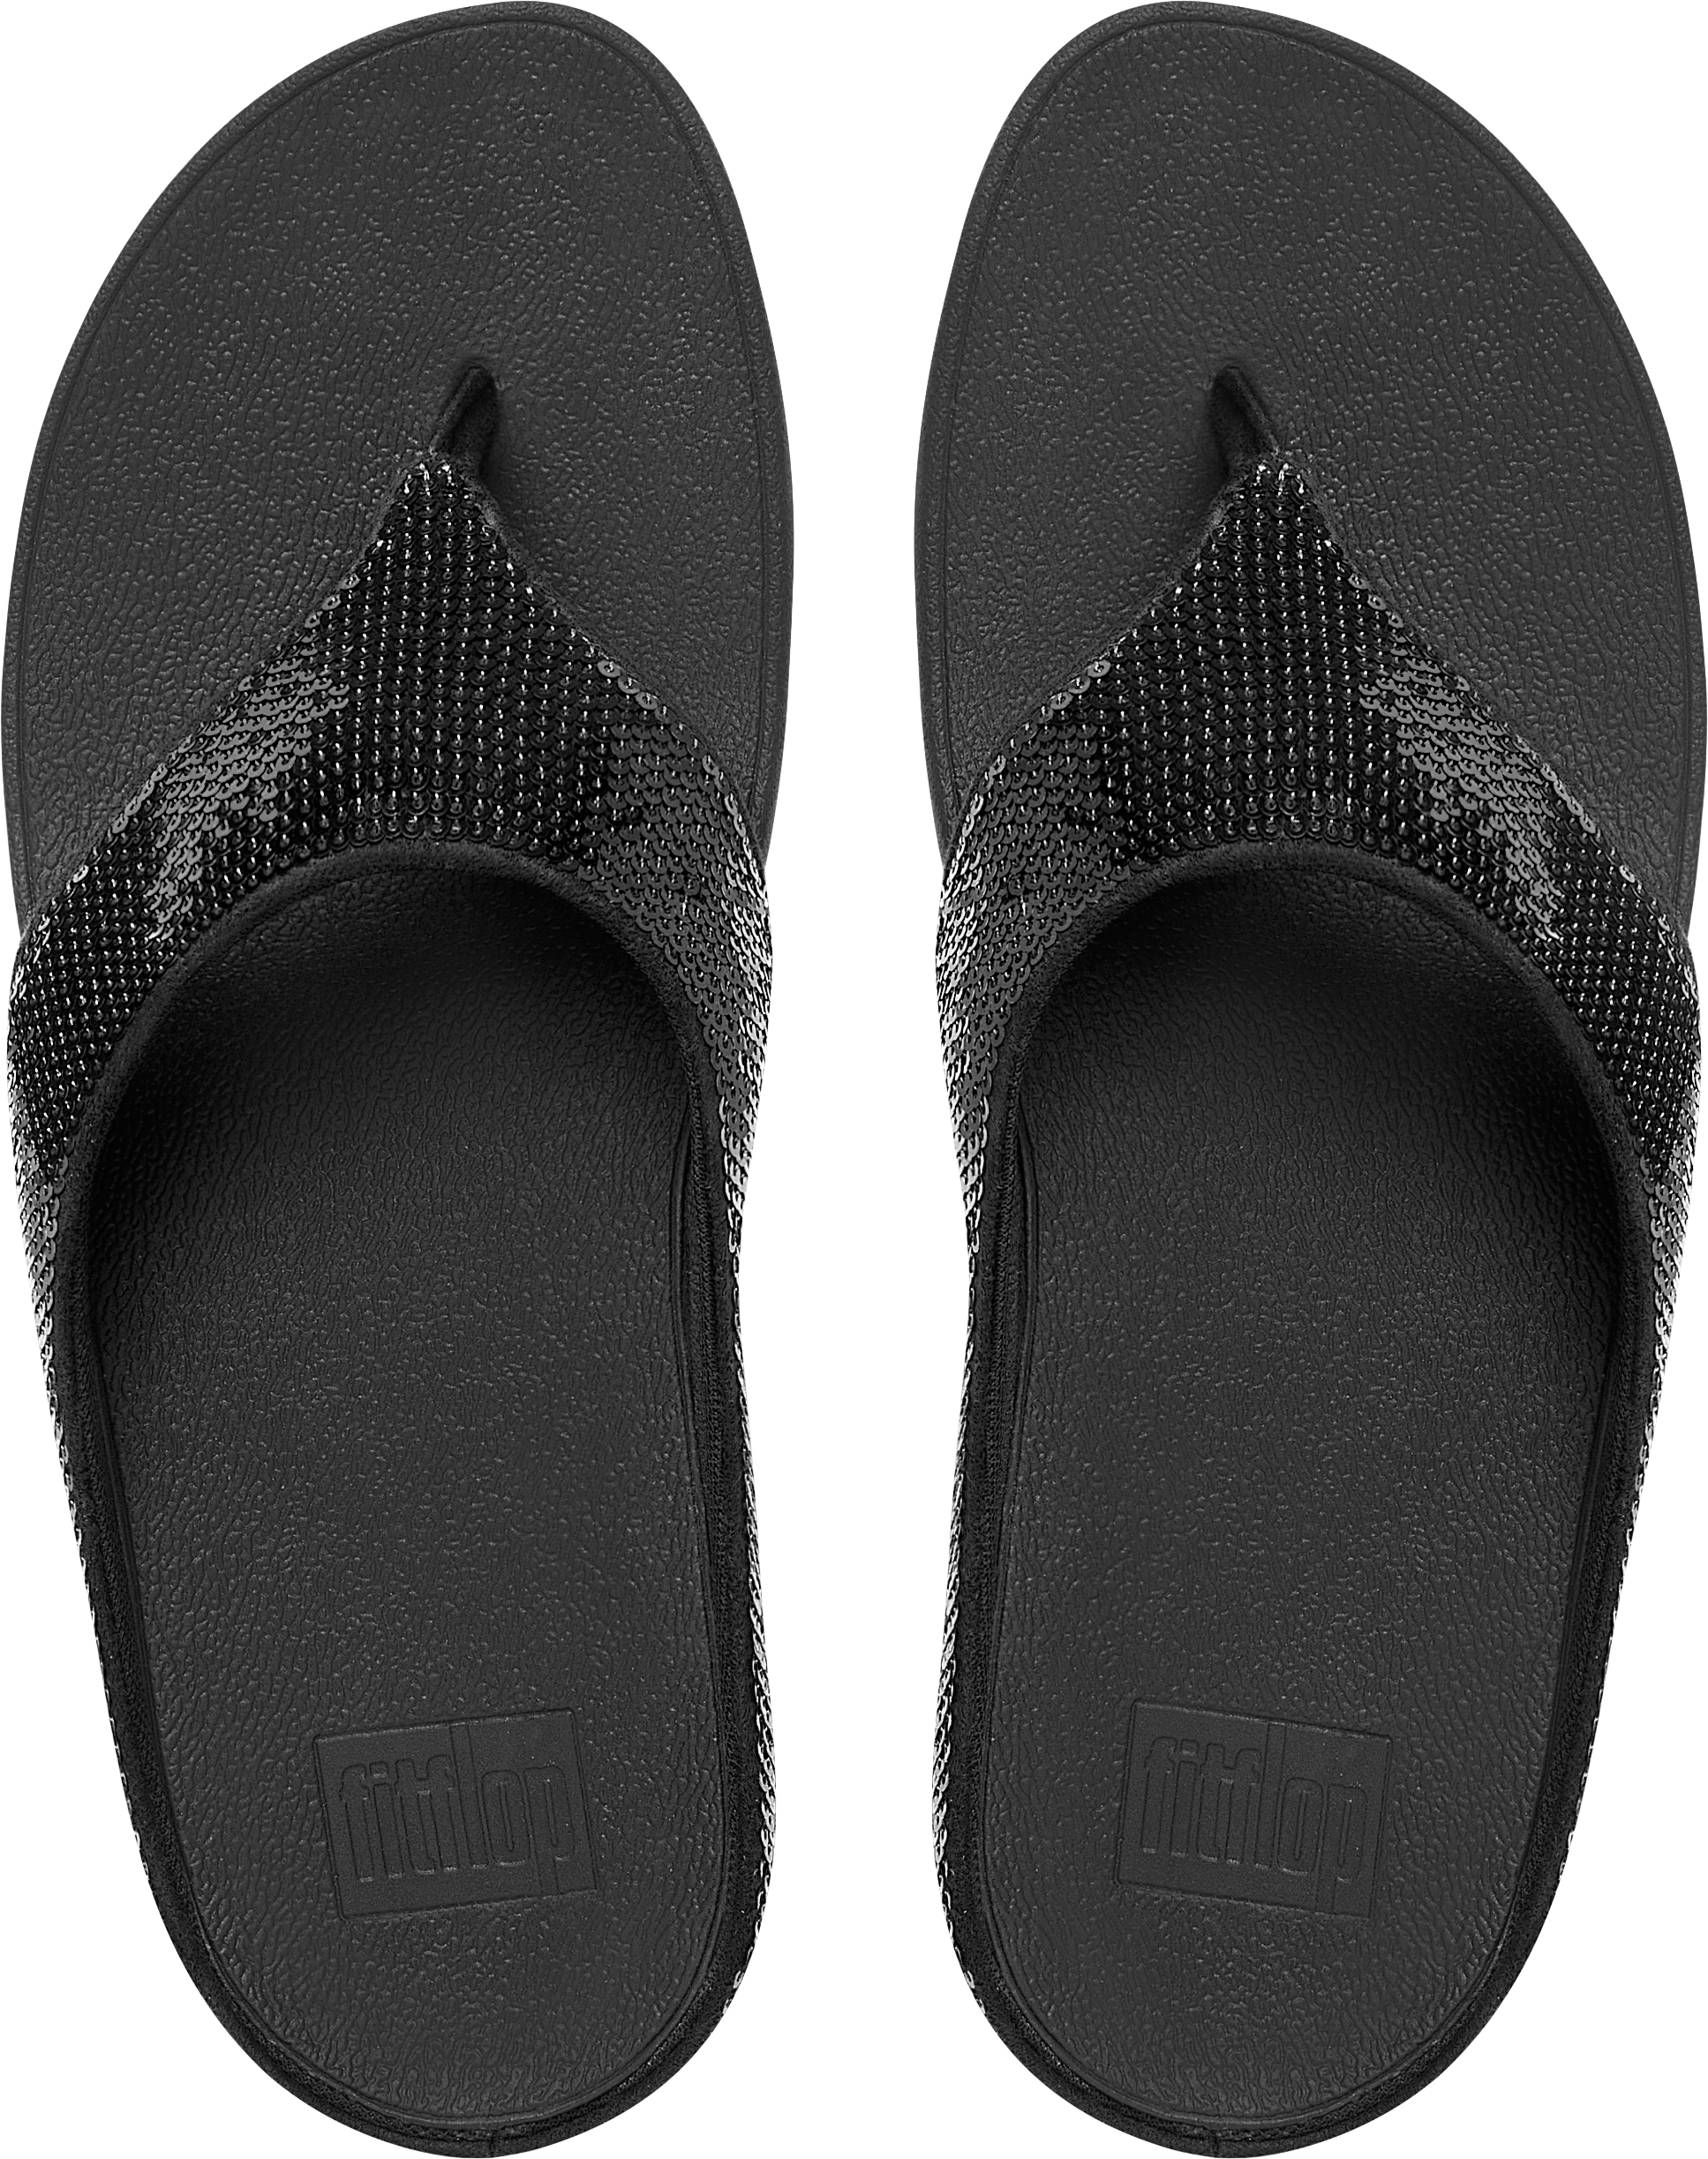 6d3237e03a467 FitFlop Ringer Sequin Toe-post - Black Leather Womens Sandals 6 UK. About  this product. Picture 1 of 4  Picture 2 of 4  Picture 3 of 4 ...